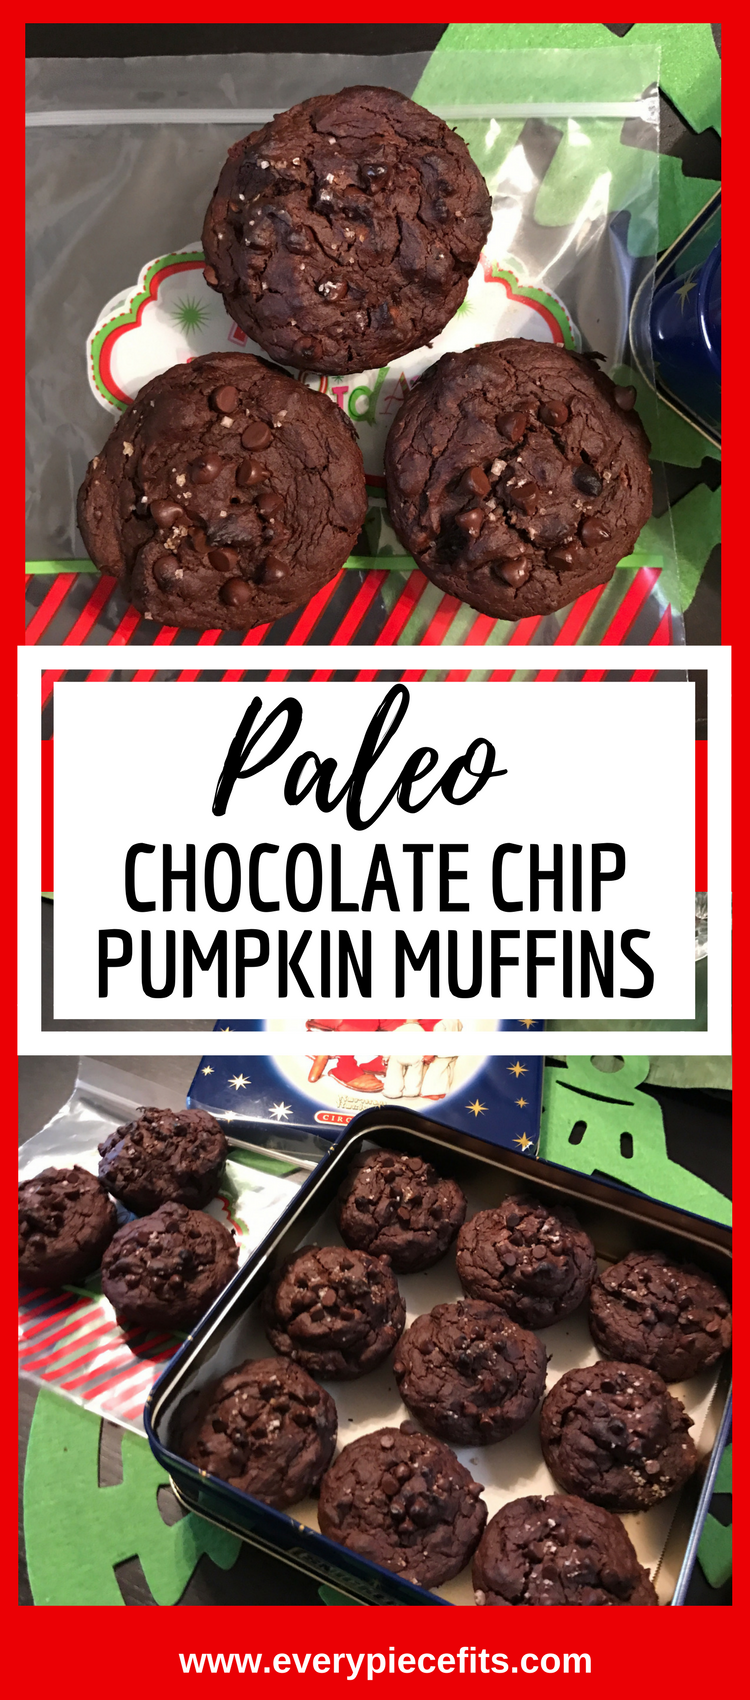 Paleo Chocolate Chip Pumpkin Muffins.png